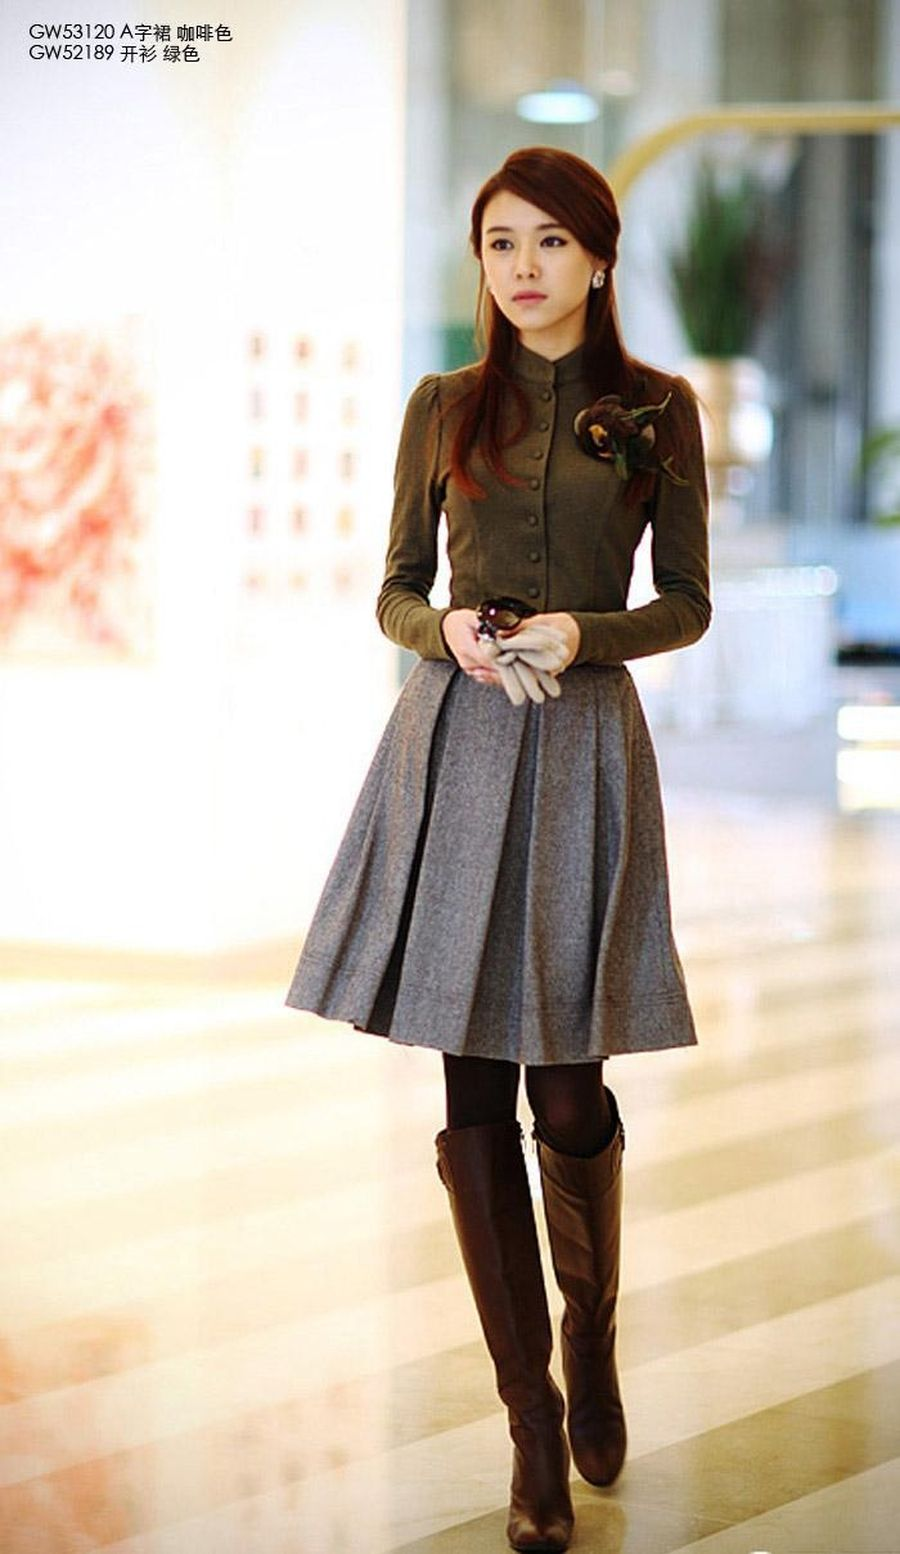 Inspiring skirt and boots combinations for fall and winter outfits 35